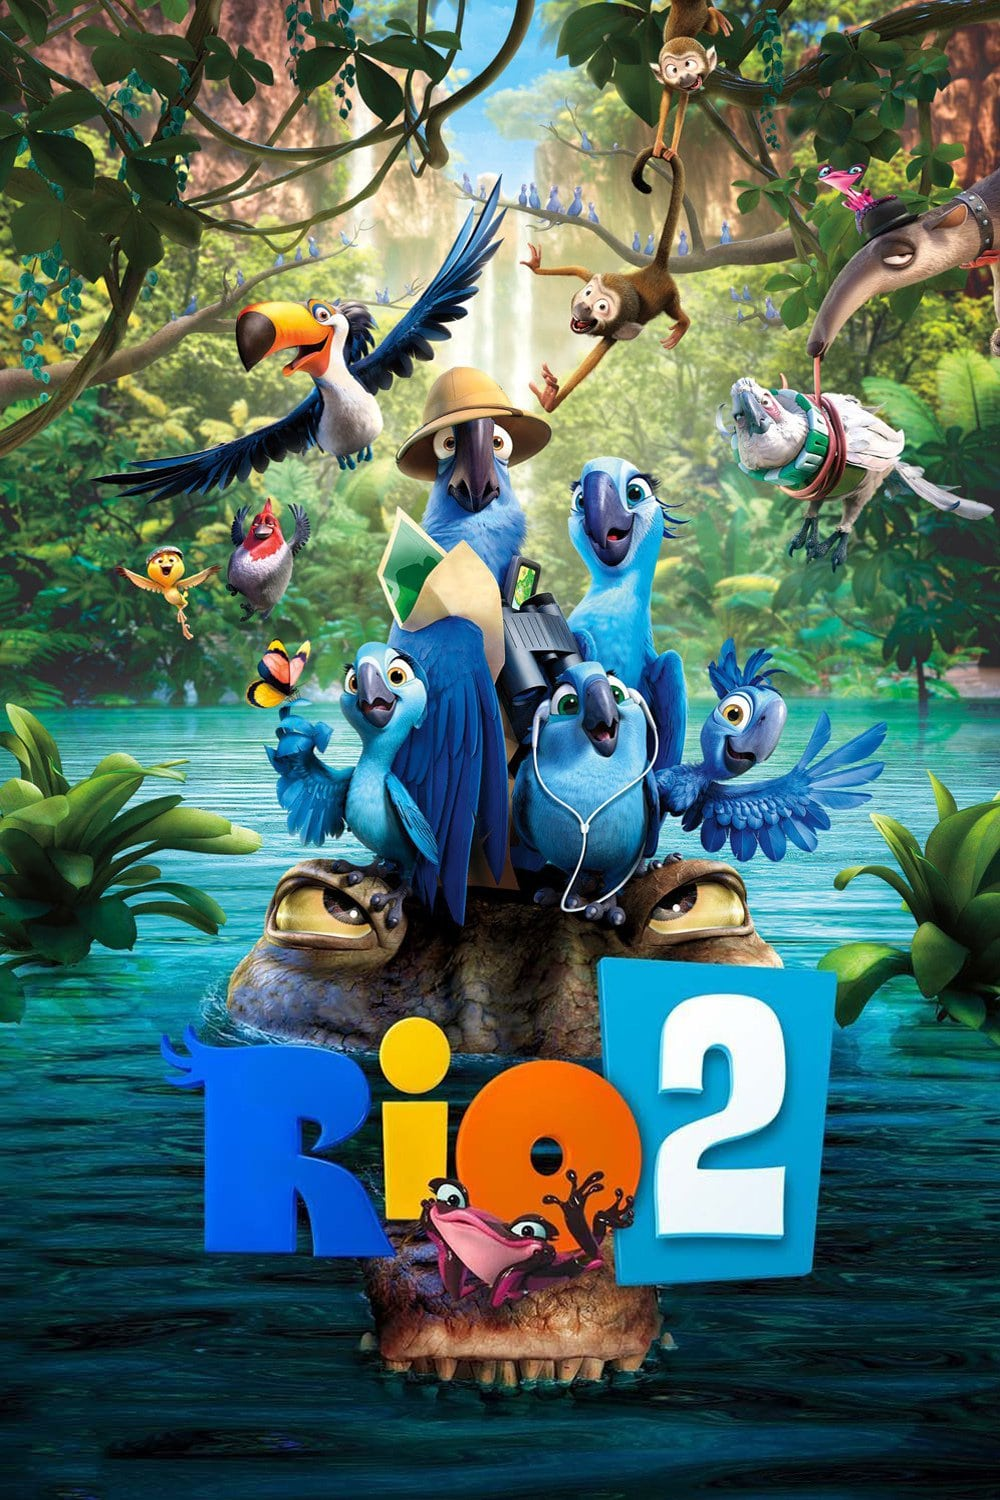 Regarder Rio 2 en streaming gratuit